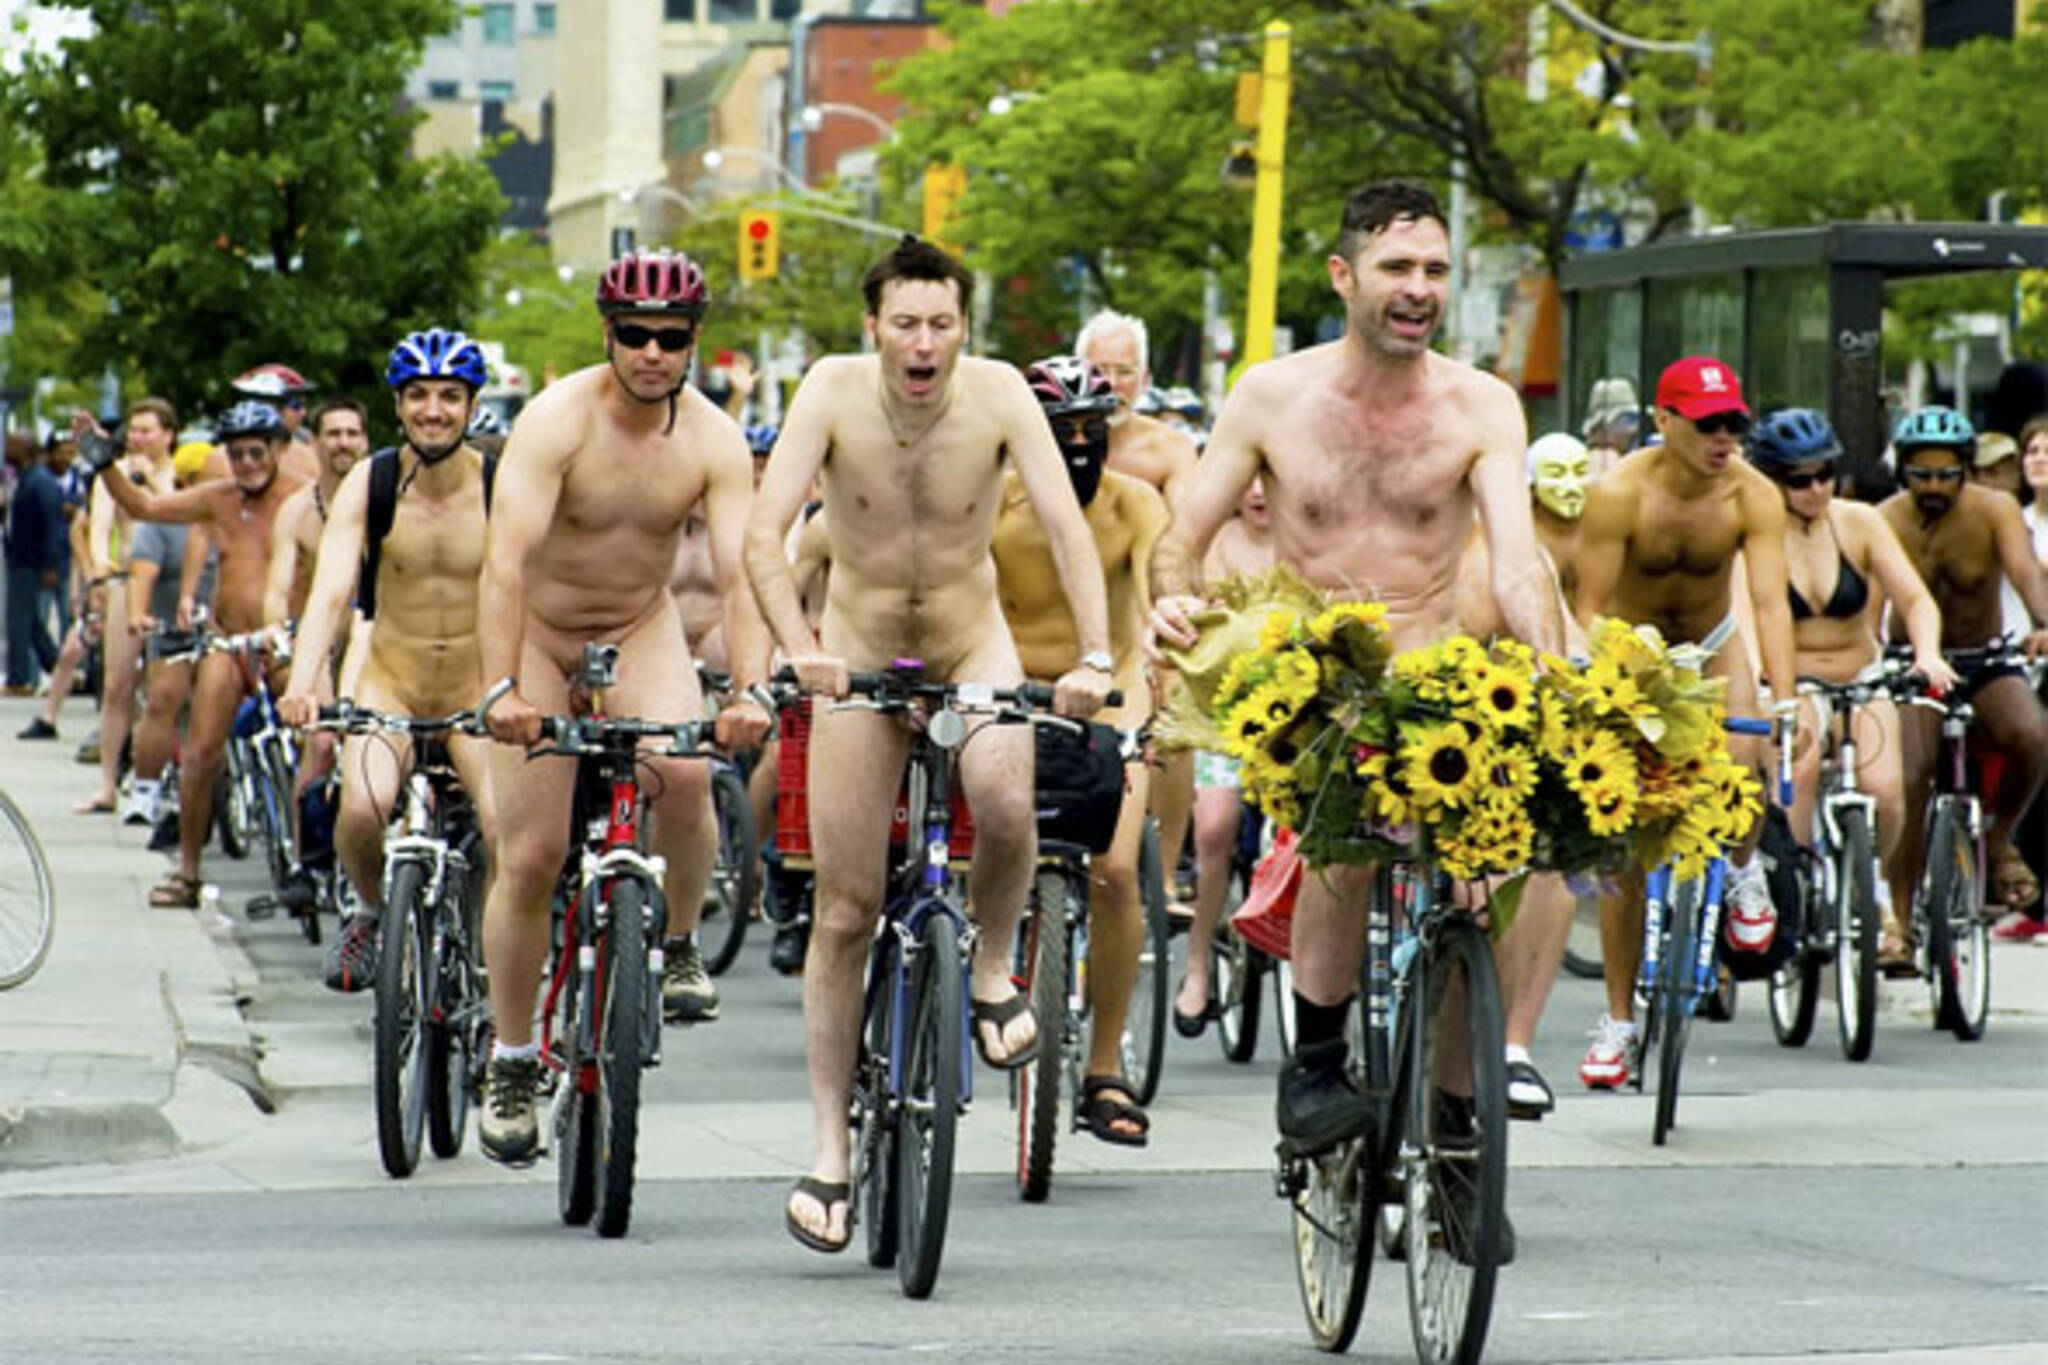 image Nude bike ride toronto Part 5